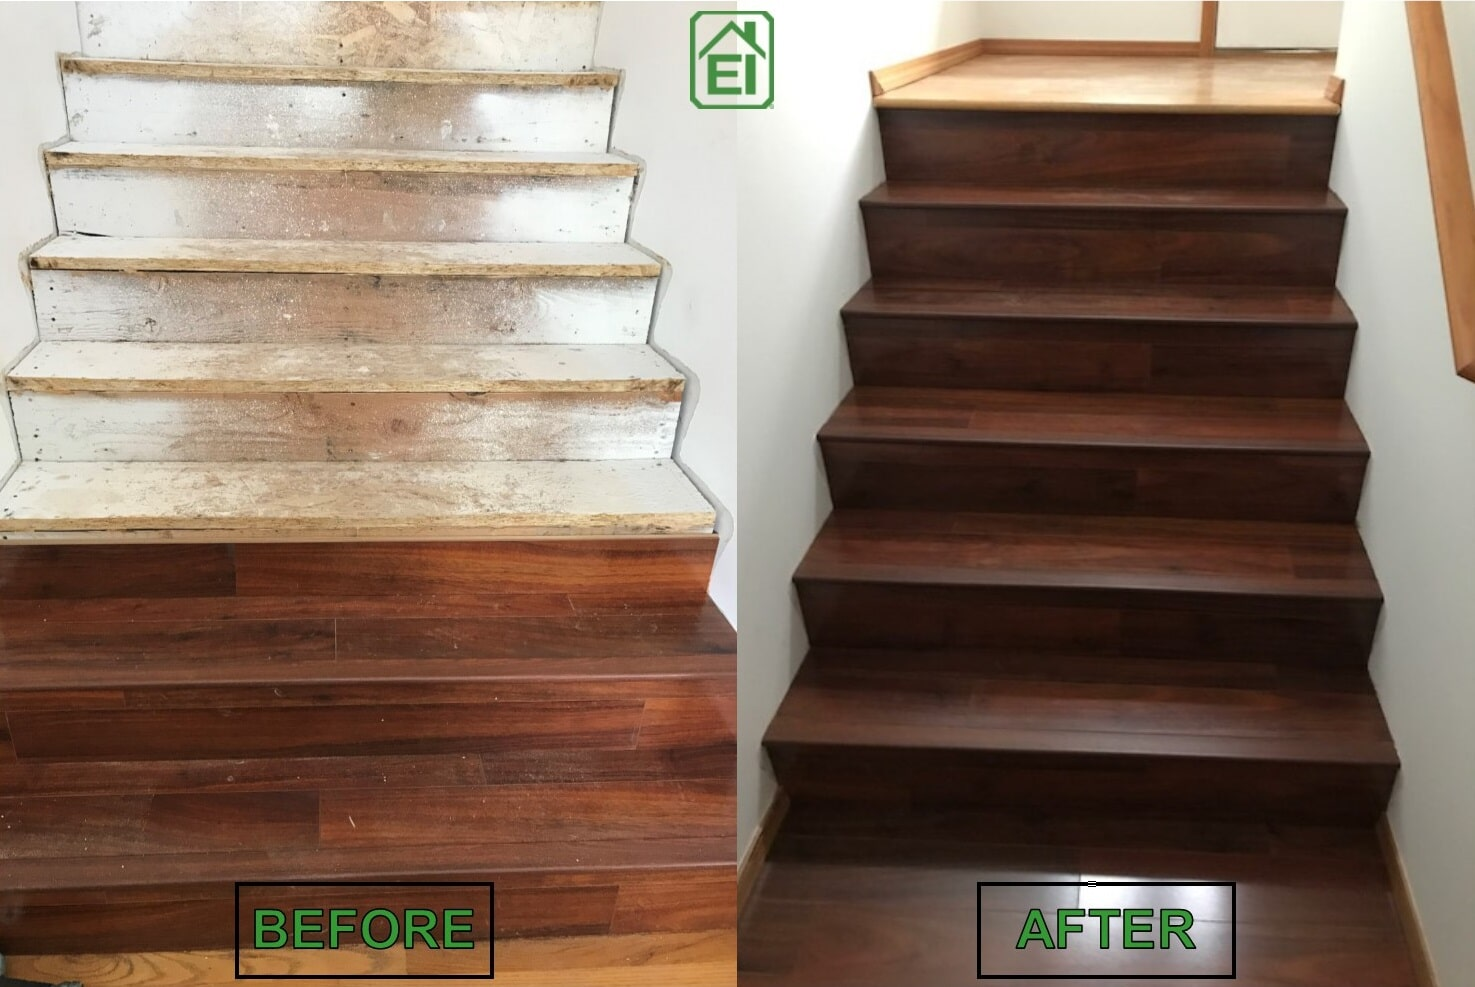 Collings Before and After hardwood stairs from Emerald Installation in Poulsbo, WA